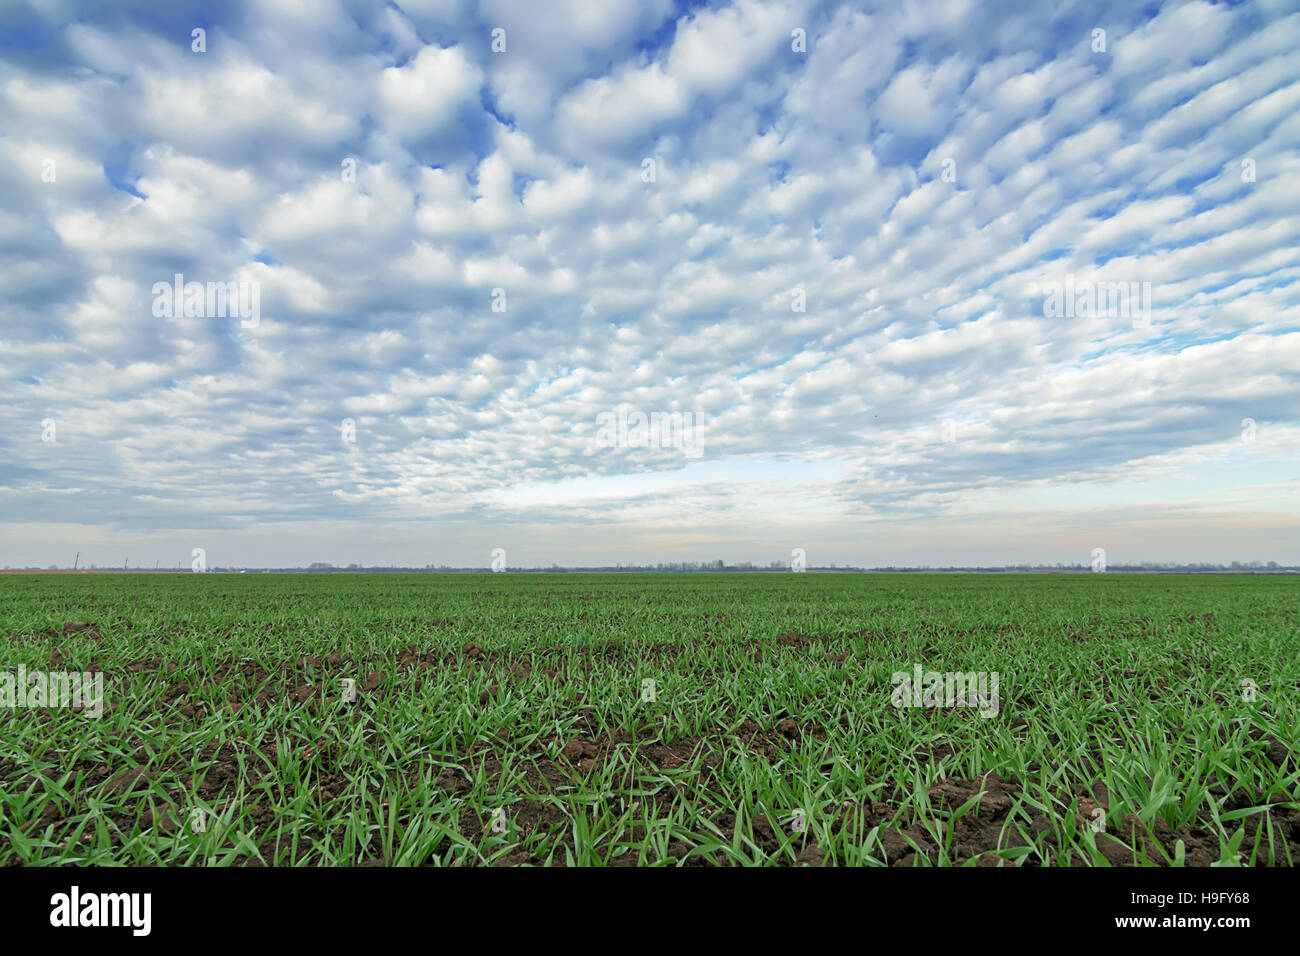 Winter wheat seedlings and blue sky. Young wheat  in field. Young wheat seedlings growing in a field. - Stock Image